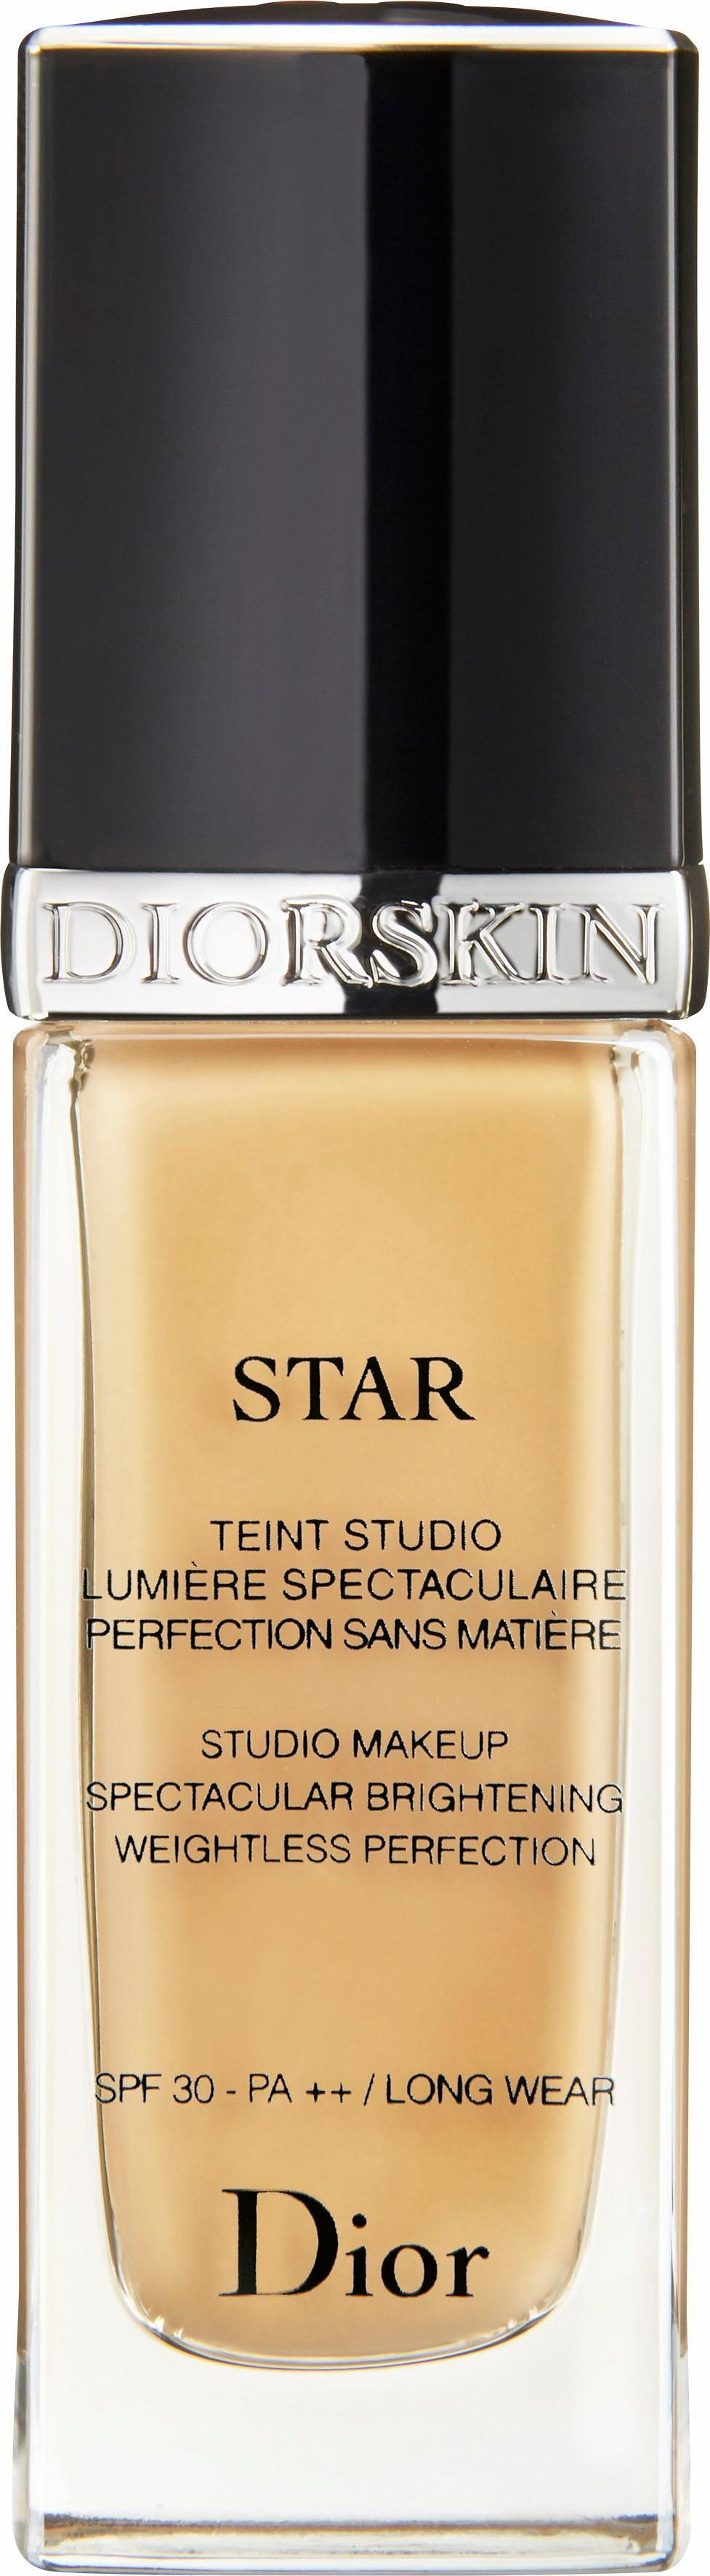 Dior, »Diorskin Star«, Foundation